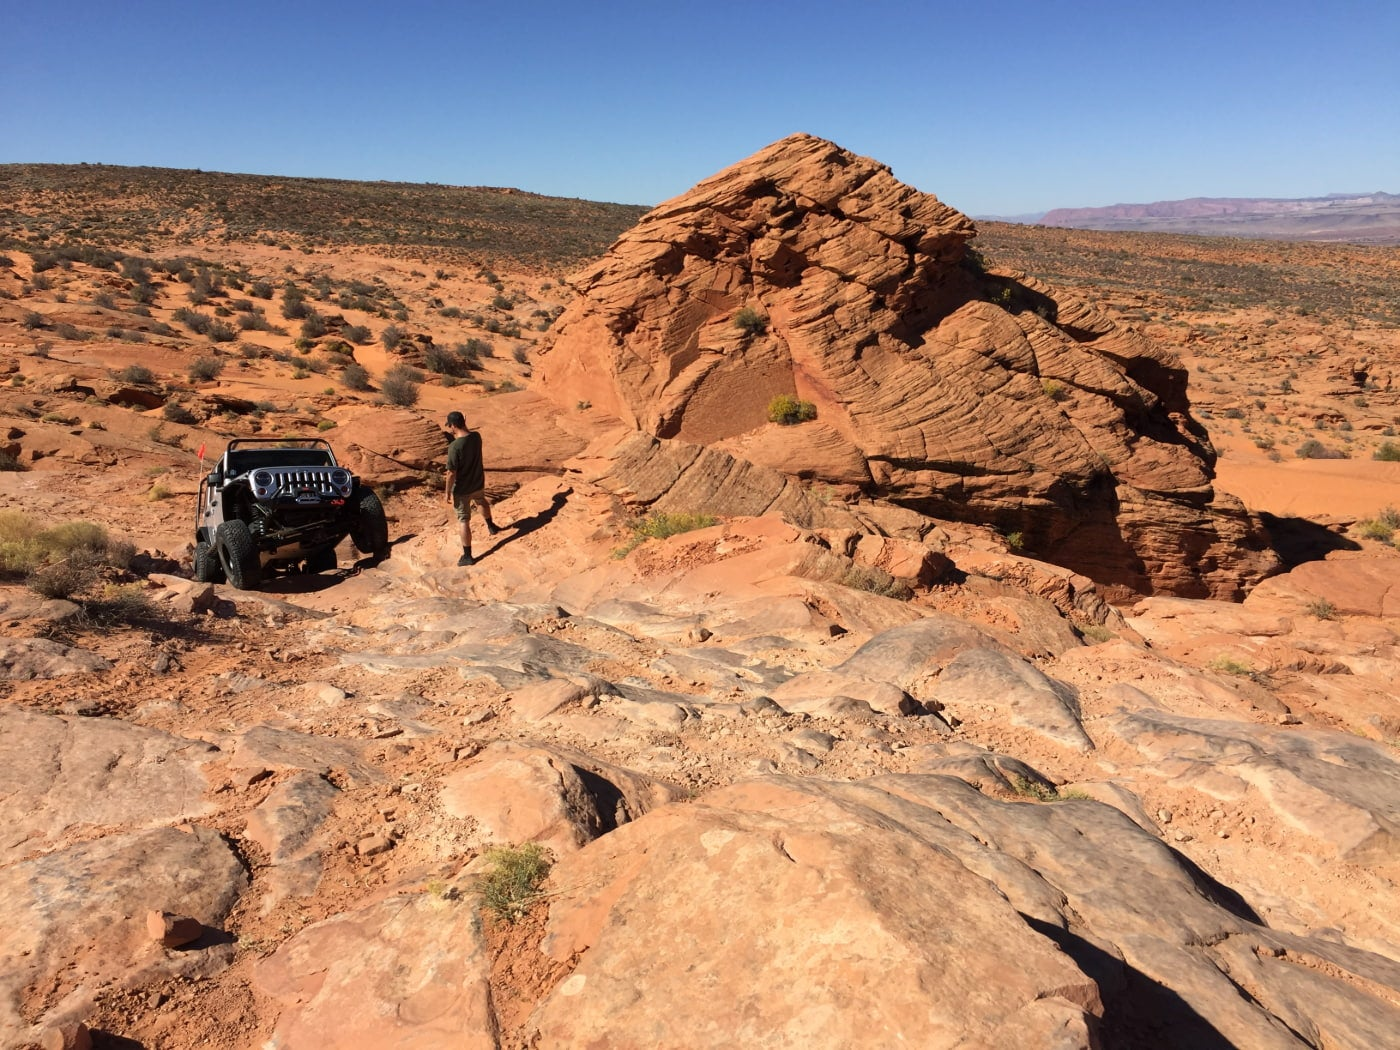 A man stares at a Jeep car in a large and flat red rock desert of southern Utah near a rocky outcropping